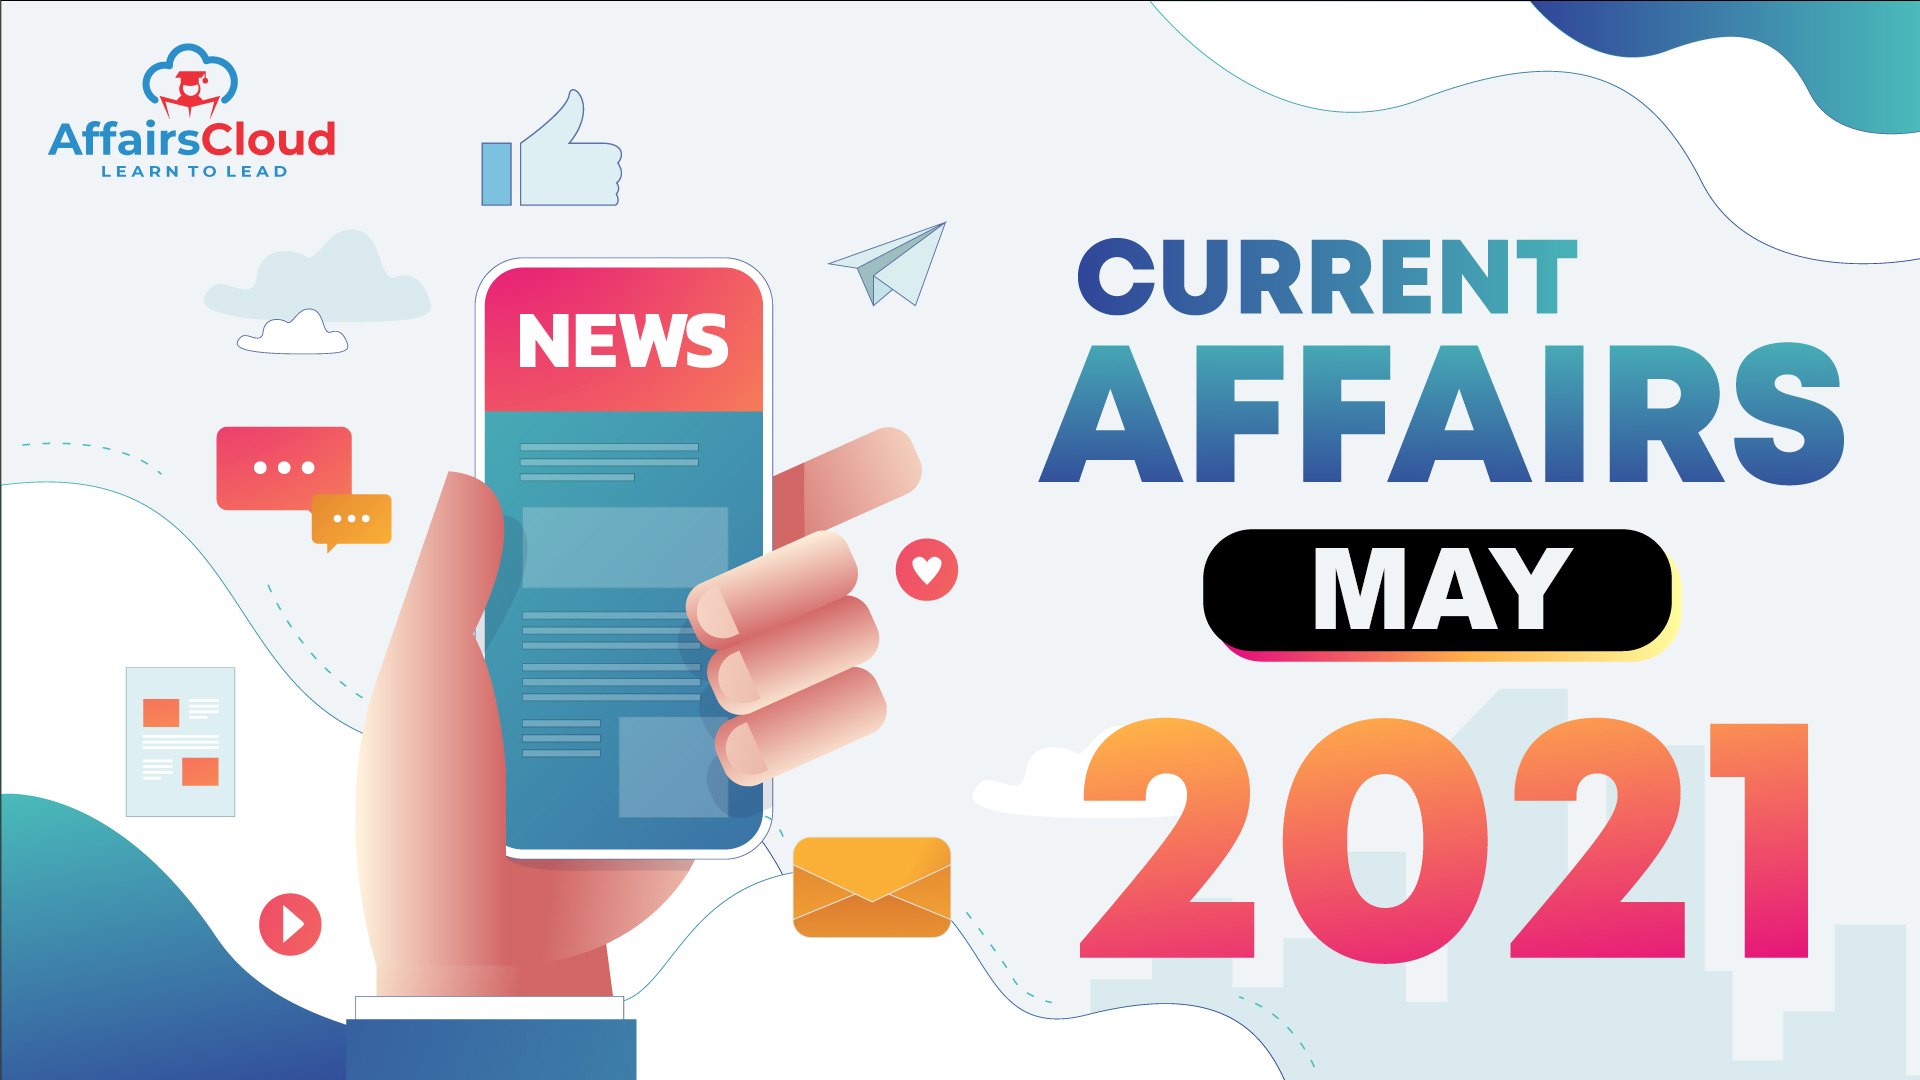 CURRENT-AFFAIRS-MONTHY May-2021